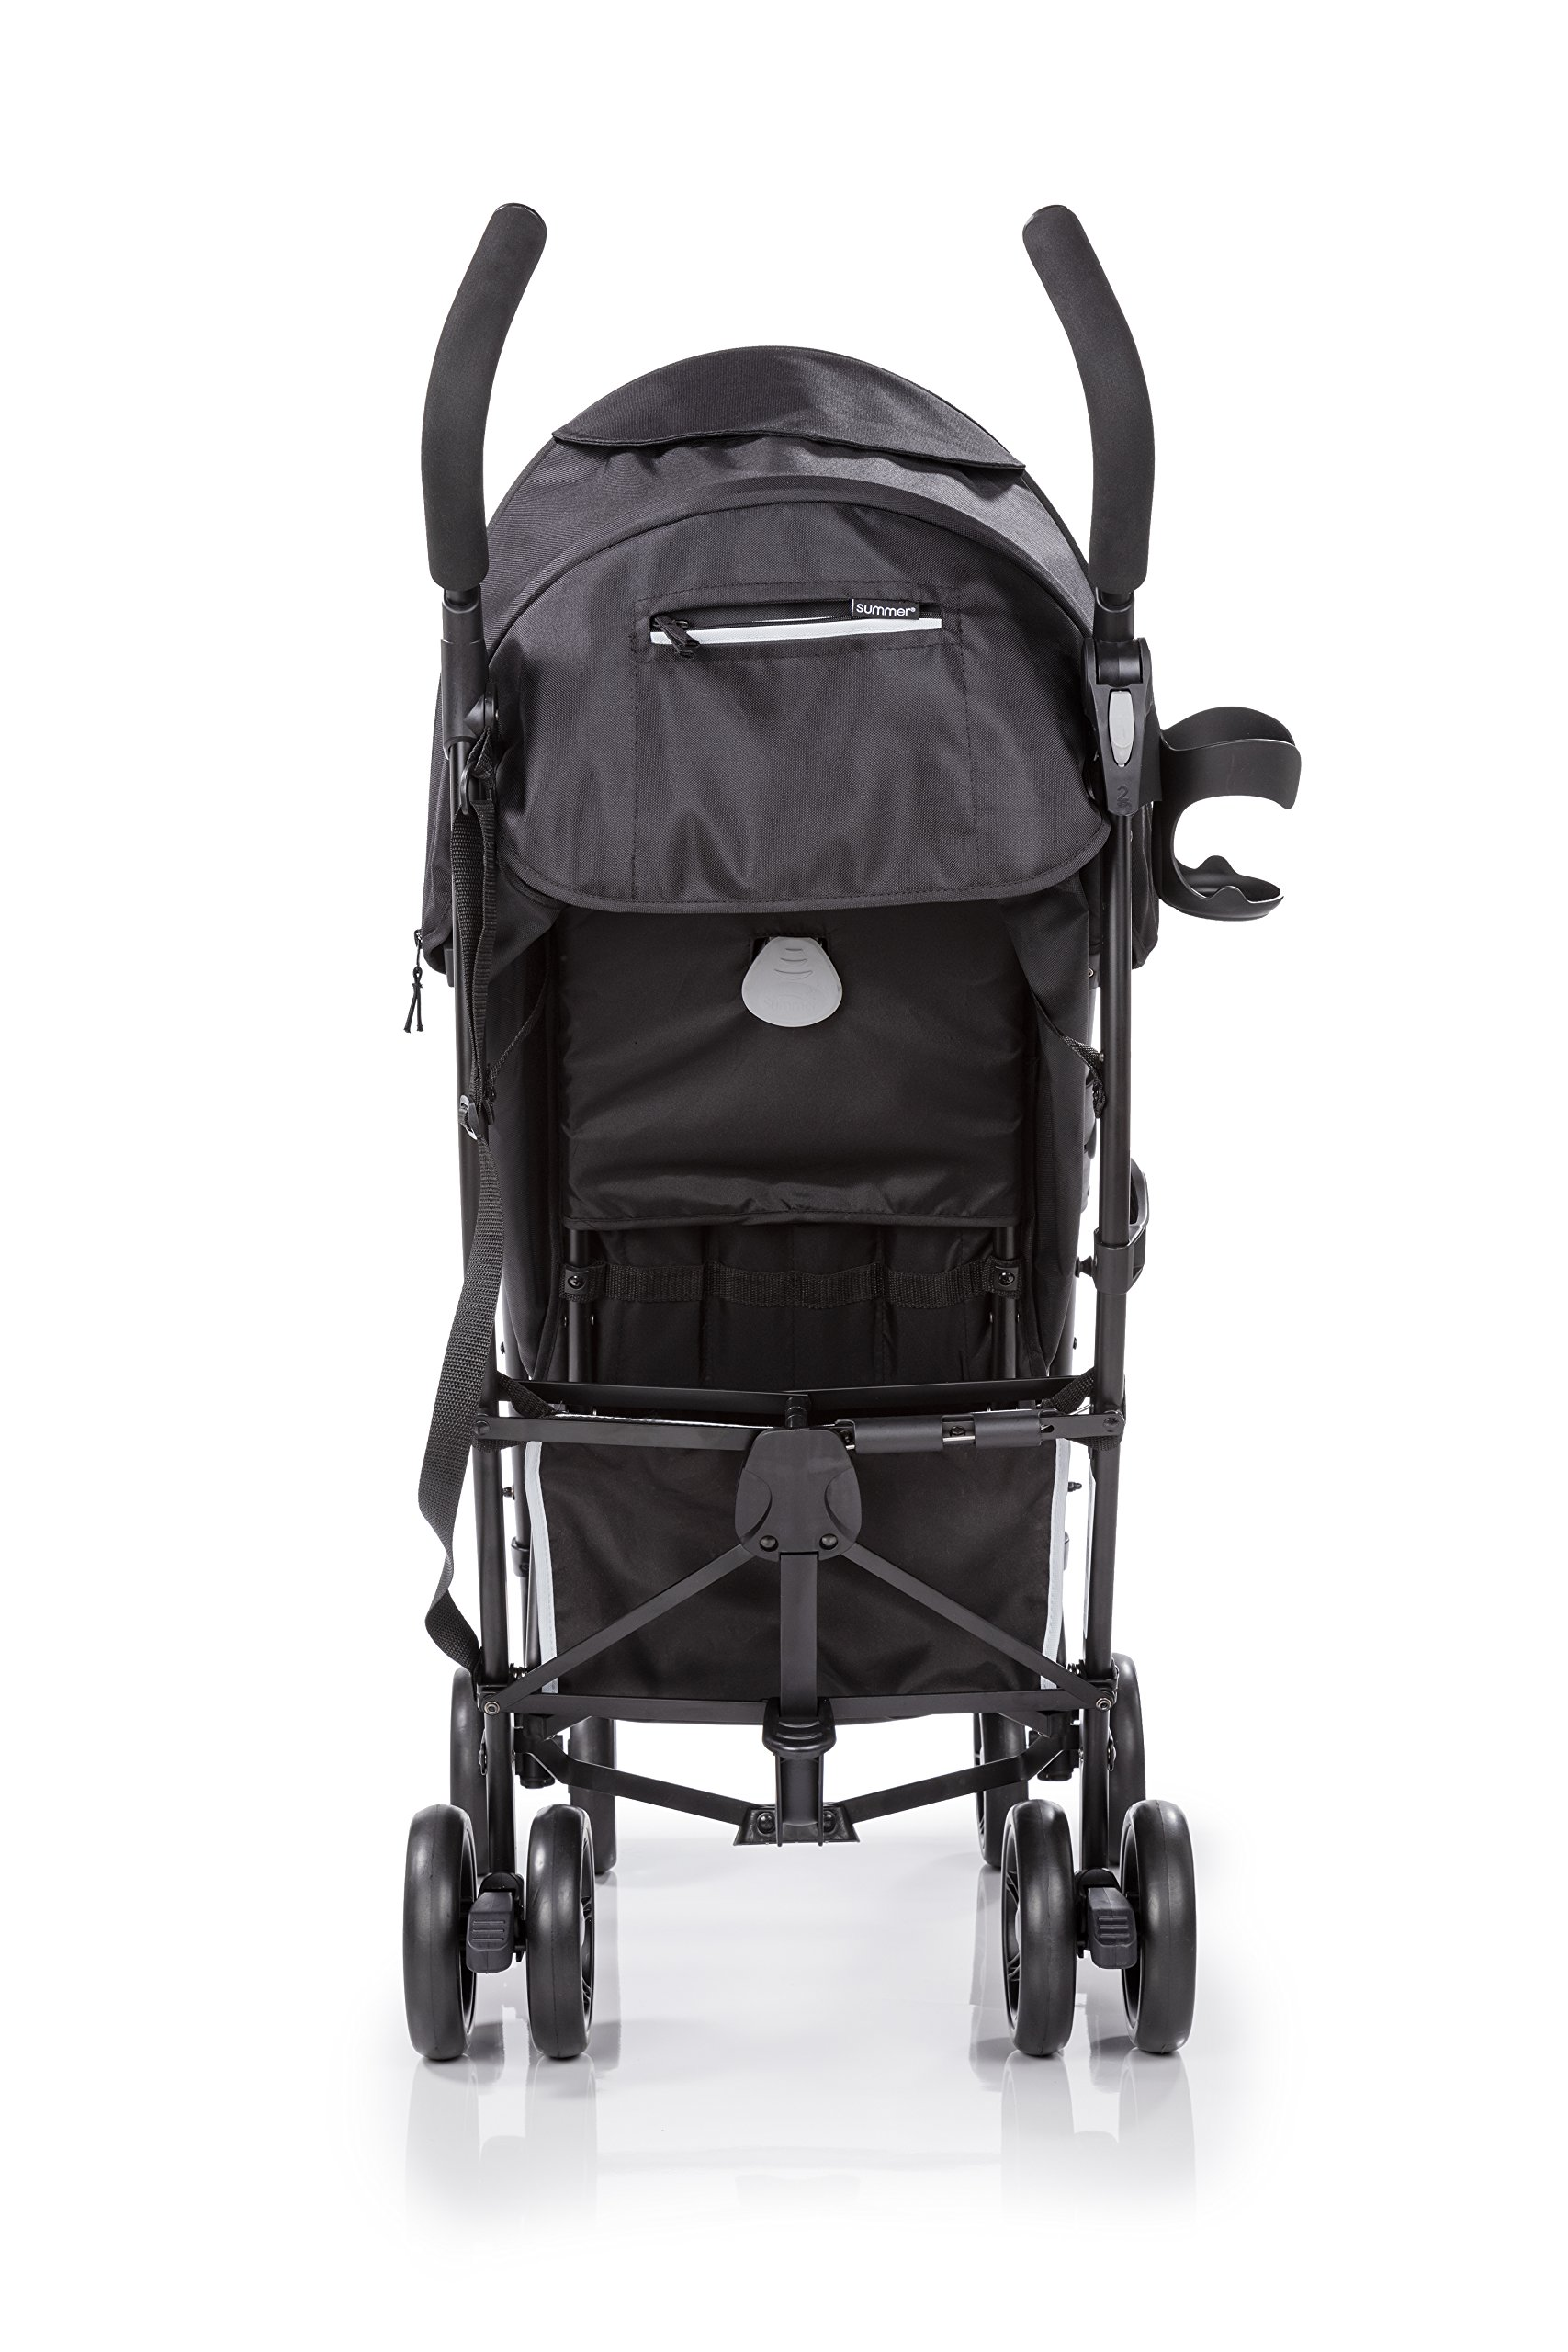 Summer Infant 3D-one Convenience Stroller, Eclipse Gray by Summer Infant (Image #3)